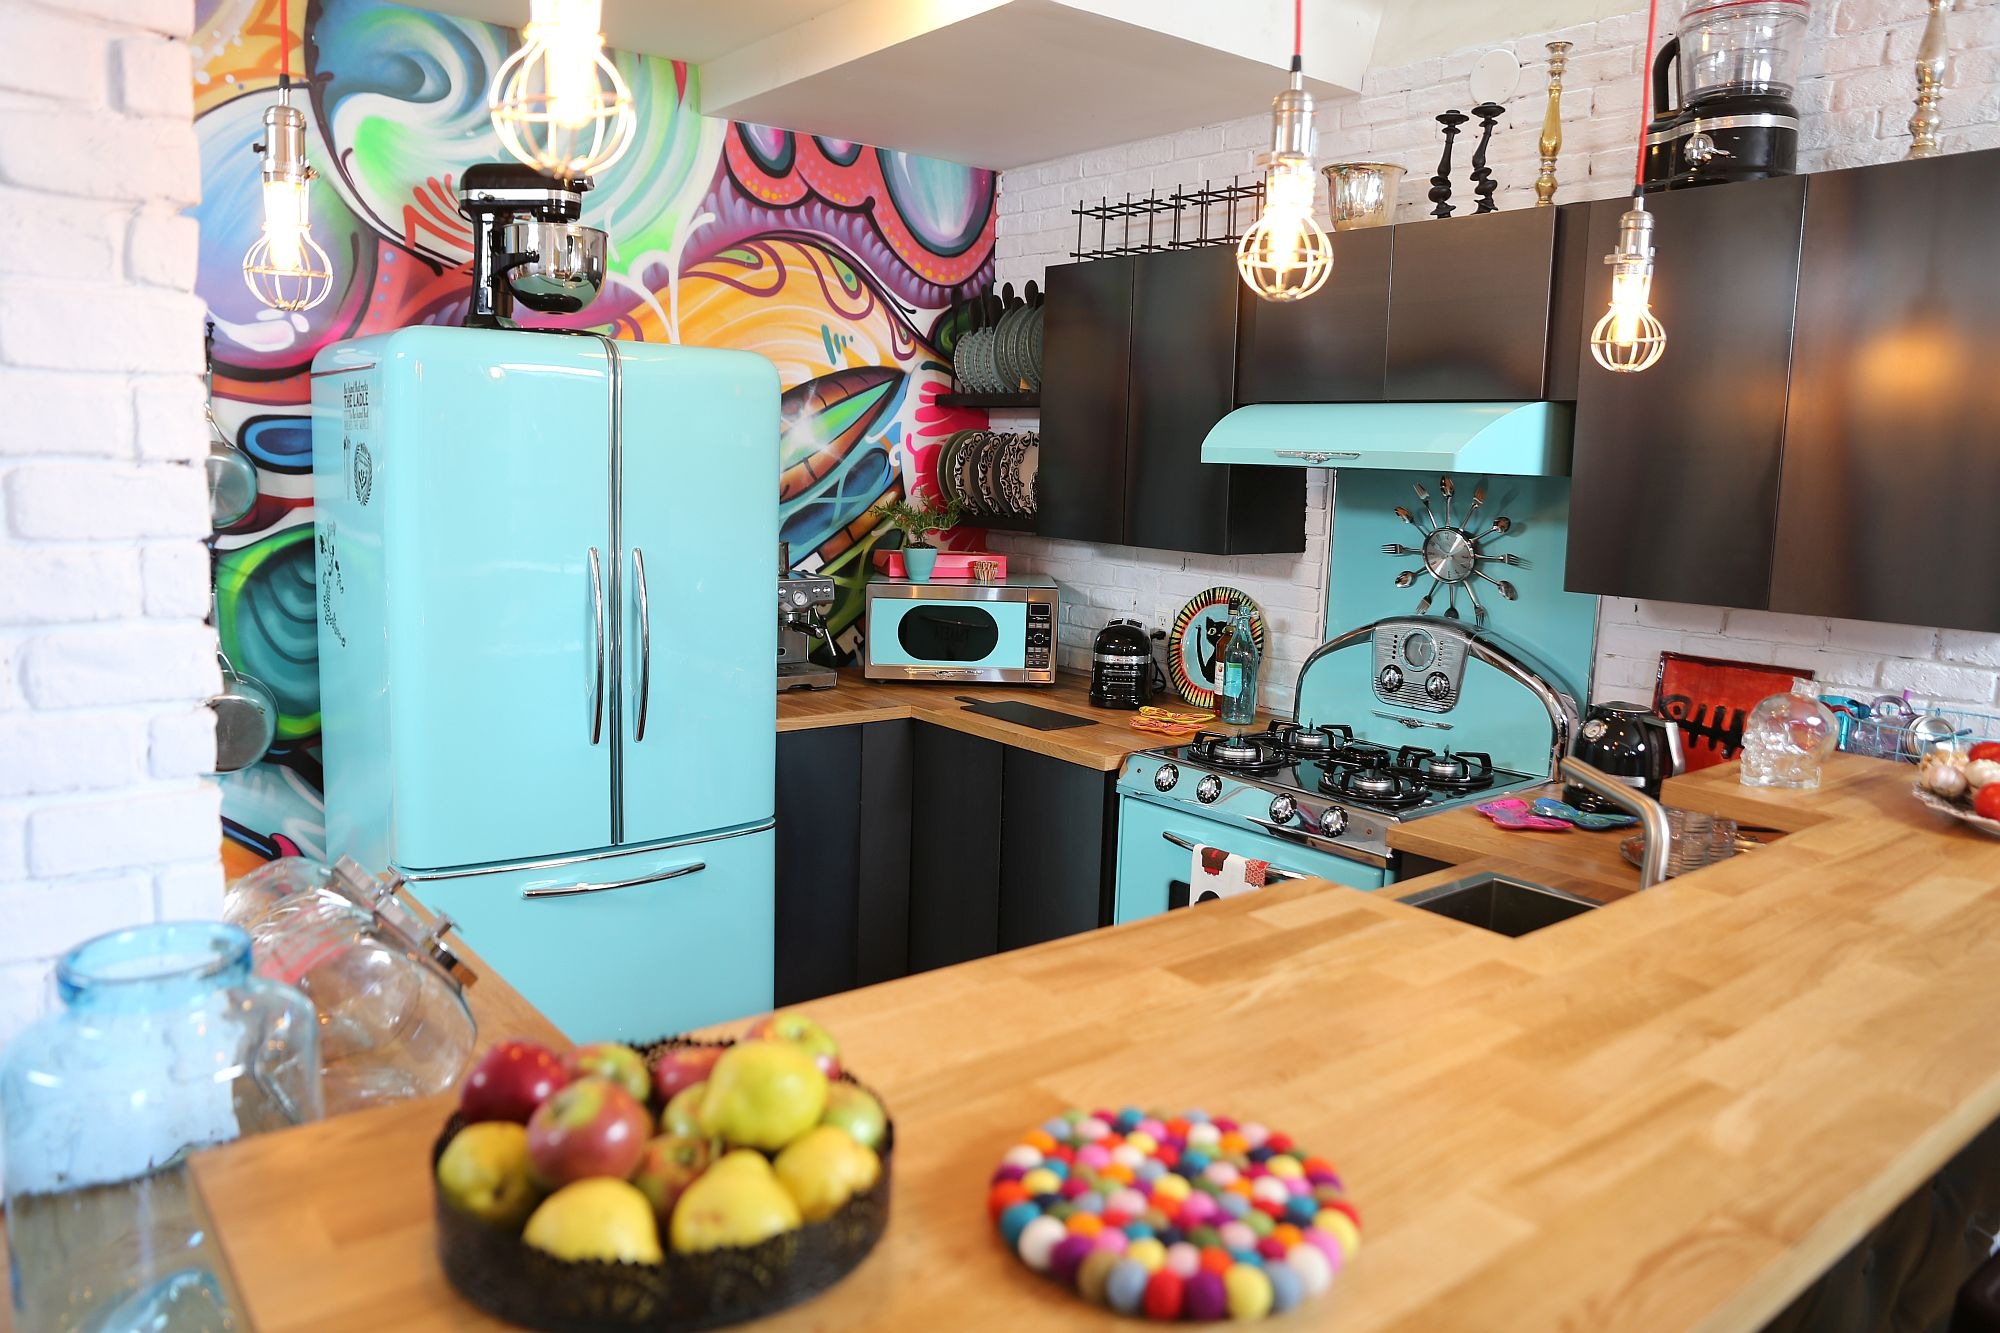 Vintage fridge in blue is a showstopper in any kitchen it adorns Trendy Dream Kitchens: Antique Elements find Modern Expression